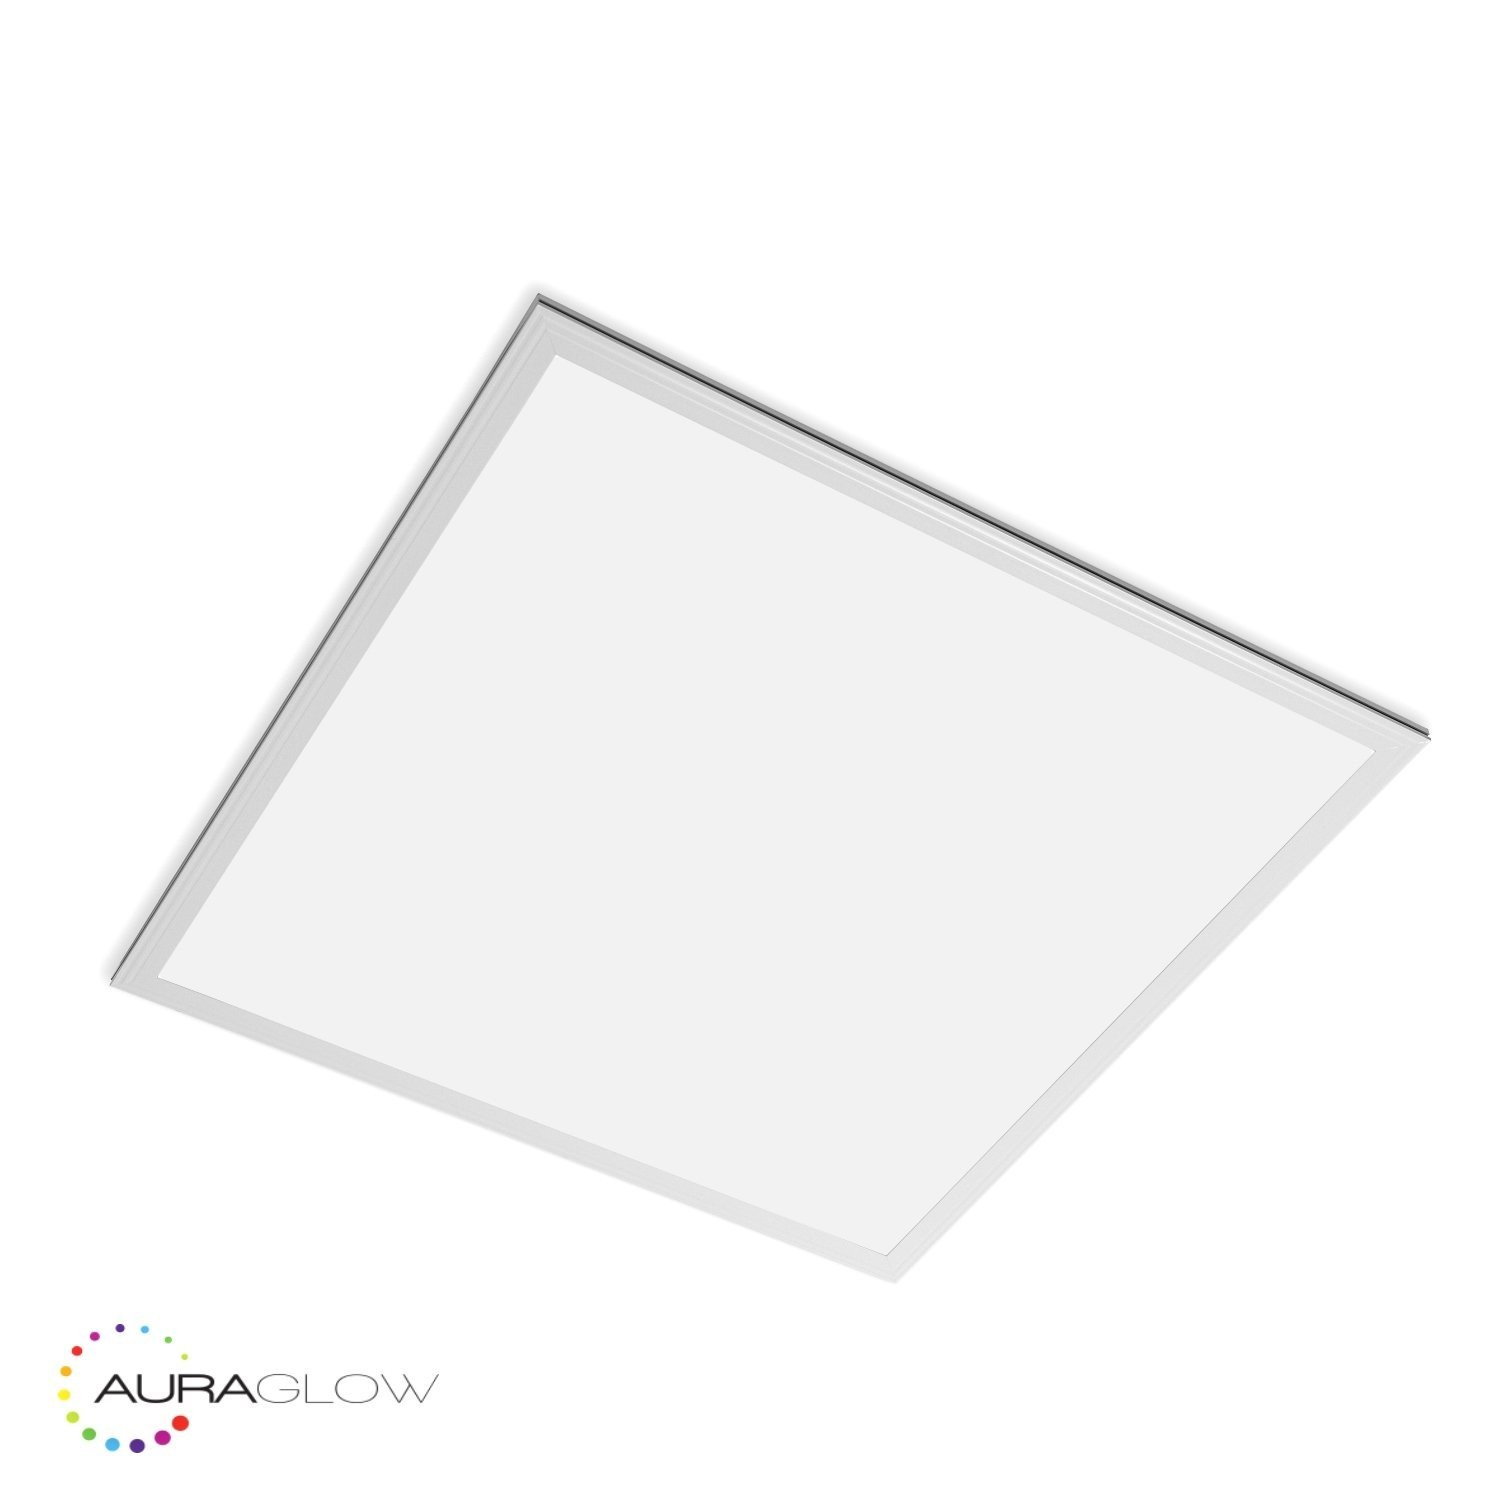 Auraglow 40w Led Panel Light 600 X 600mm 4000k